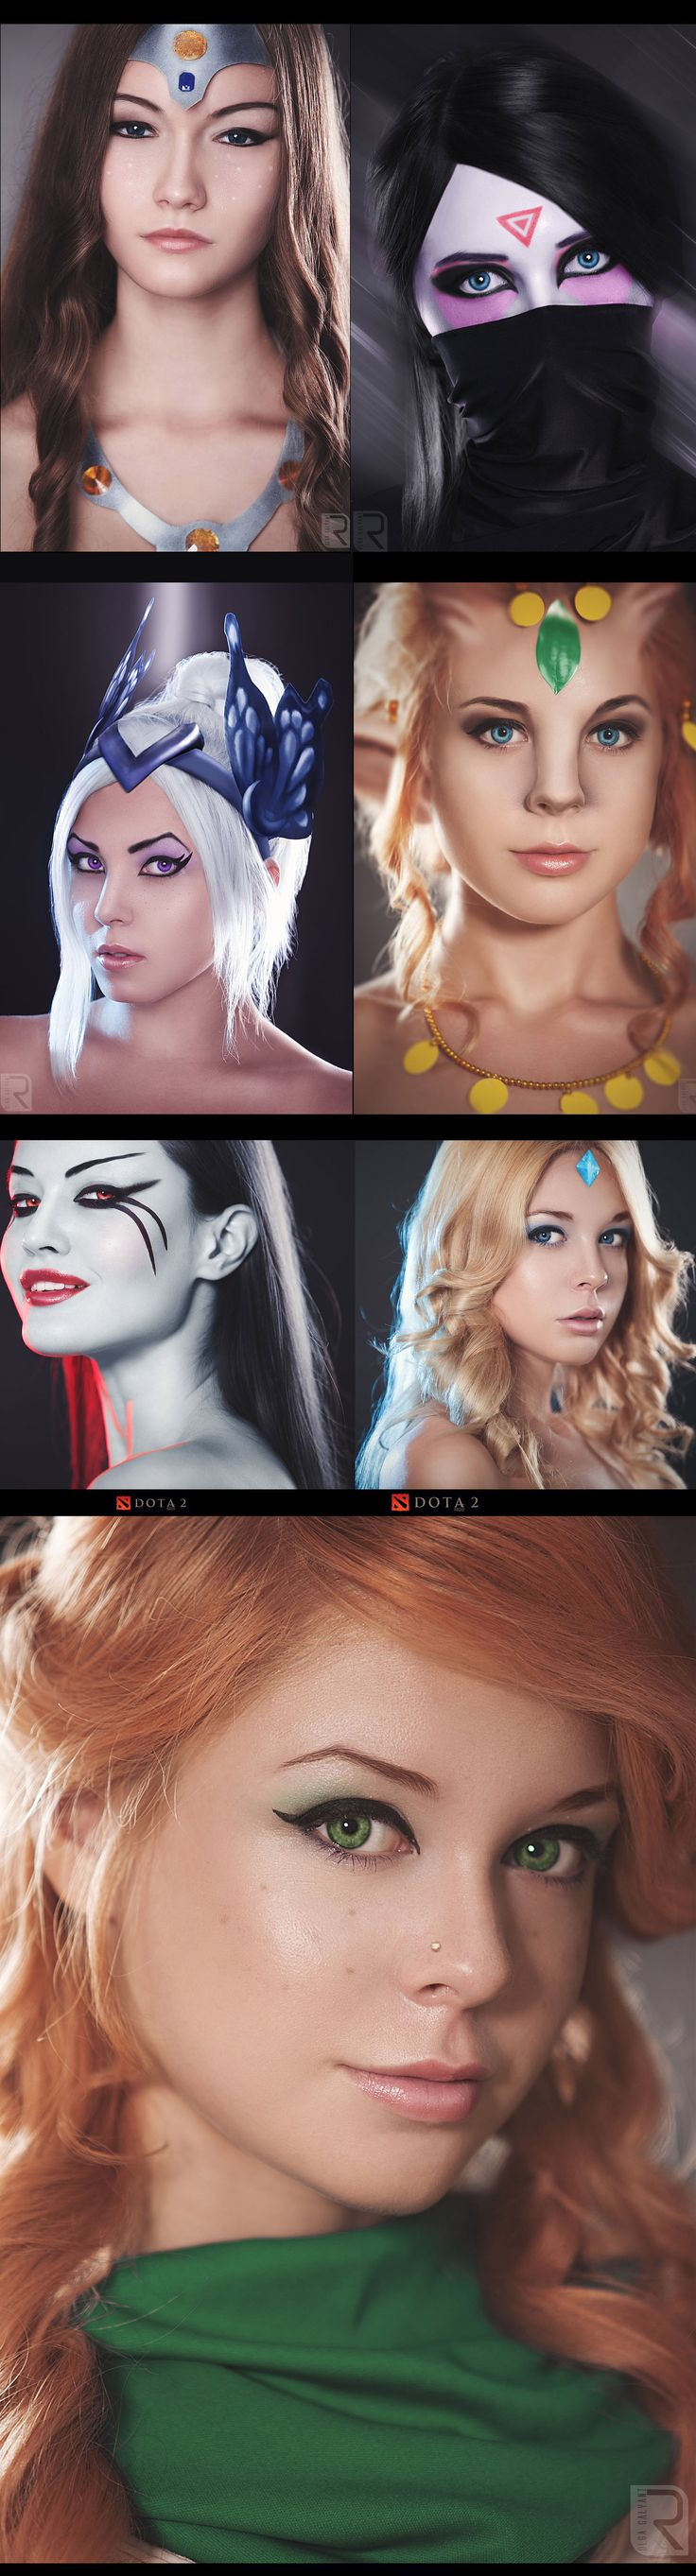 DOTA 2 Cosplay series from ringeka